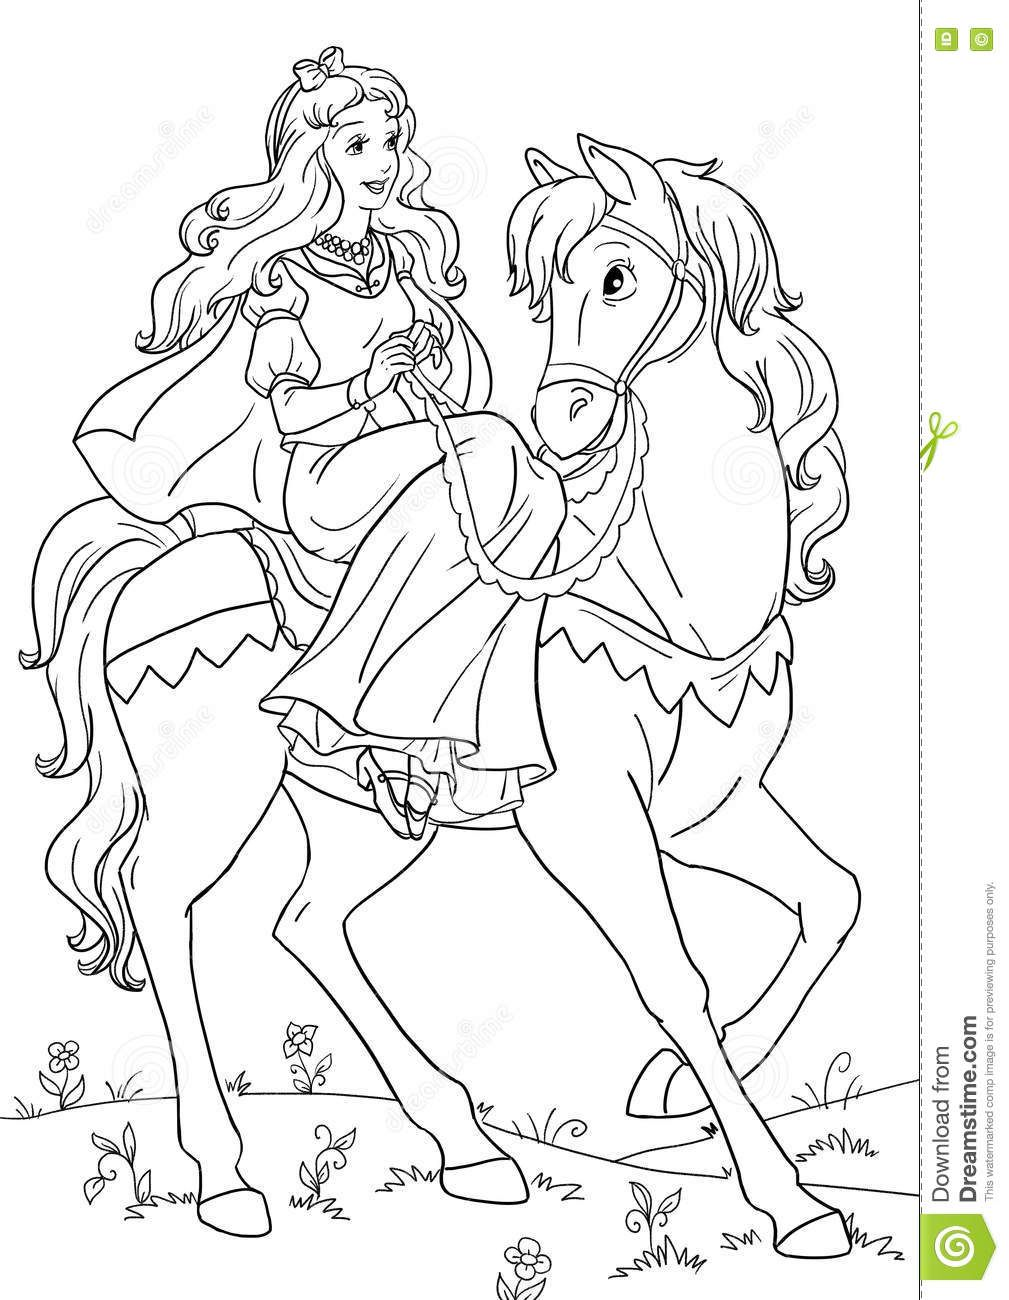 Horsed Princess Unicorn Coloring Pages Horse Coloring Books Horse Coloring Pages